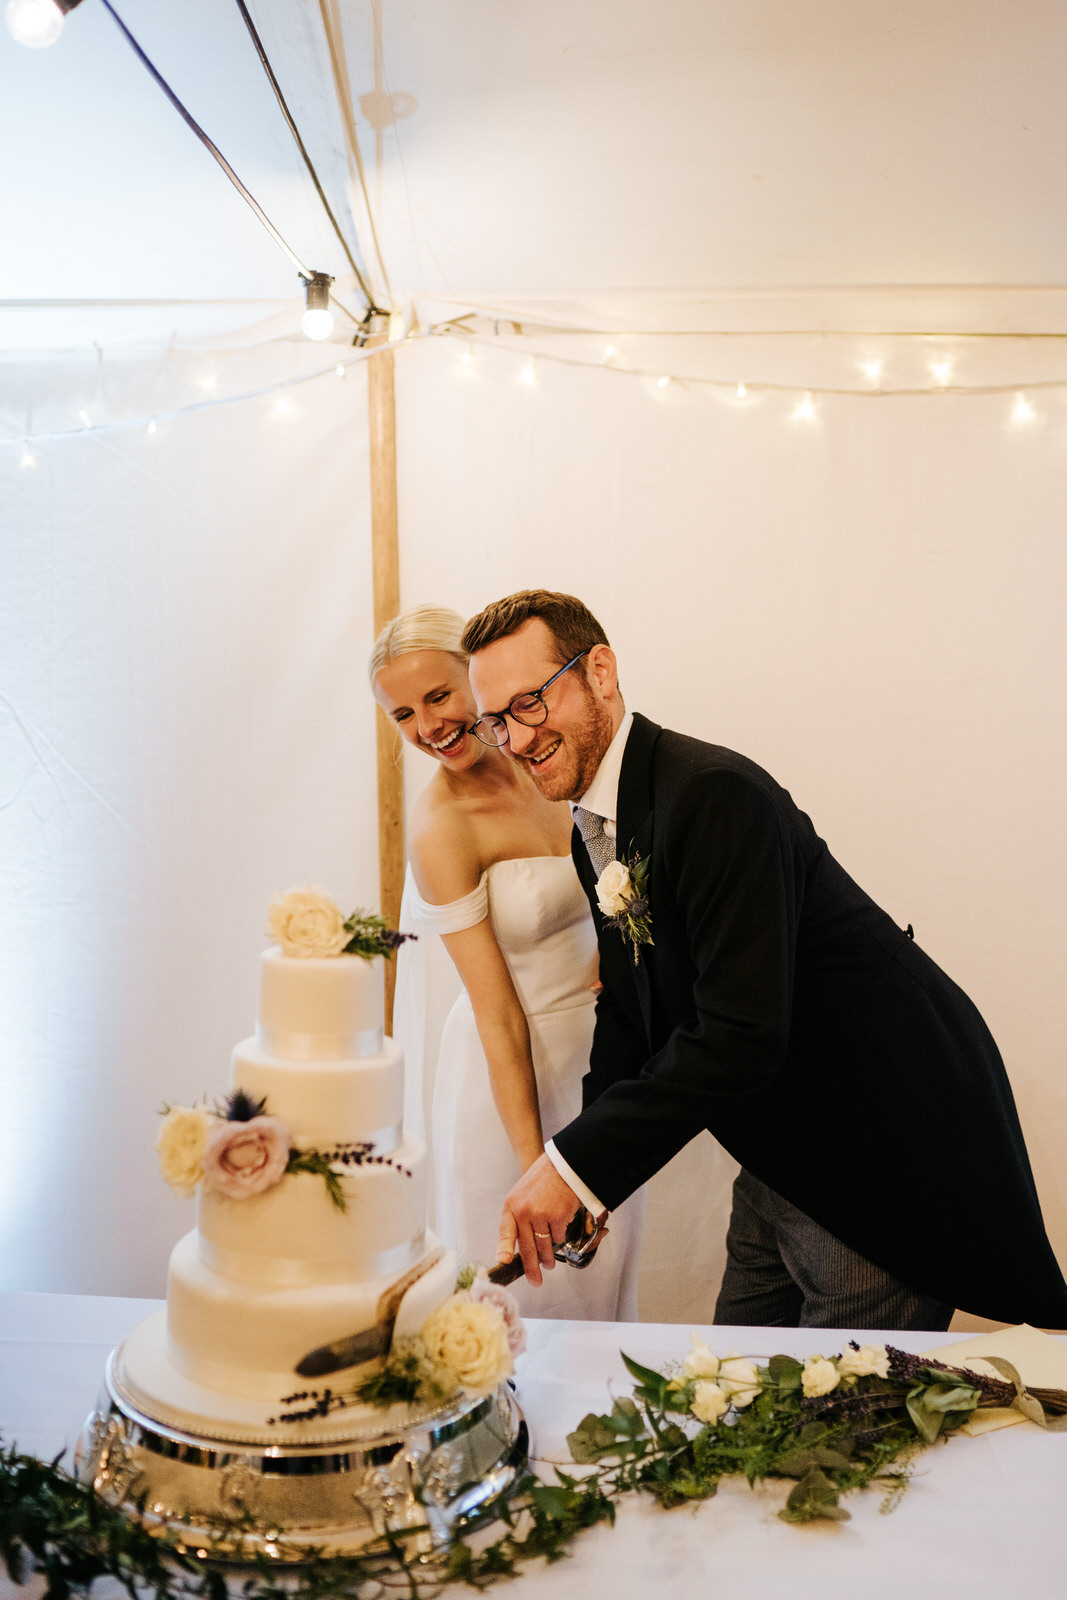 Bride and groom smile as they cut the wedding cake with a sword